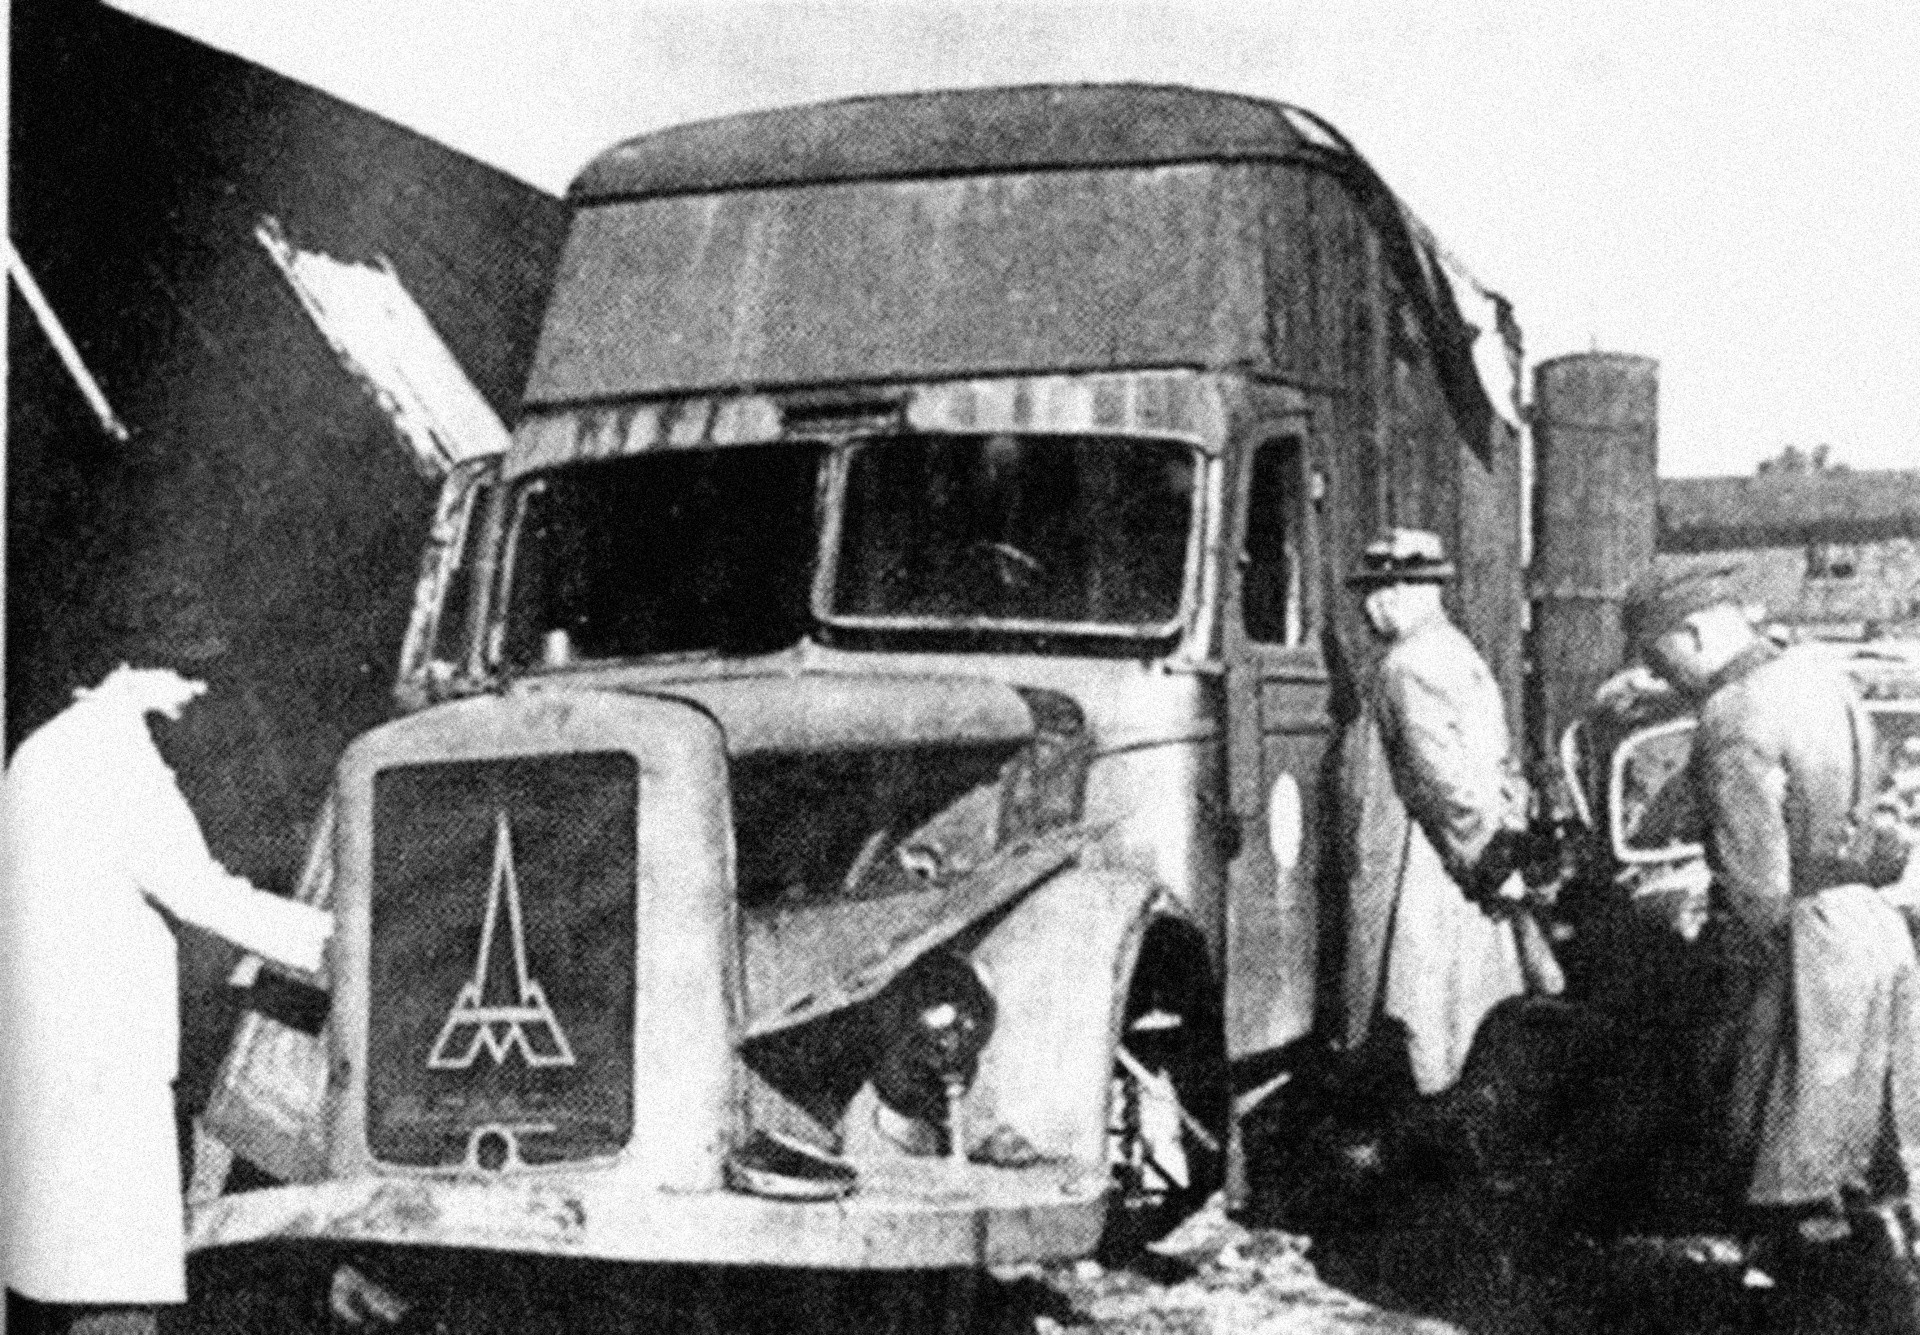 File:Destroyed Magirus-Deutz furniture transport van Kolno Poland 1945.jpg